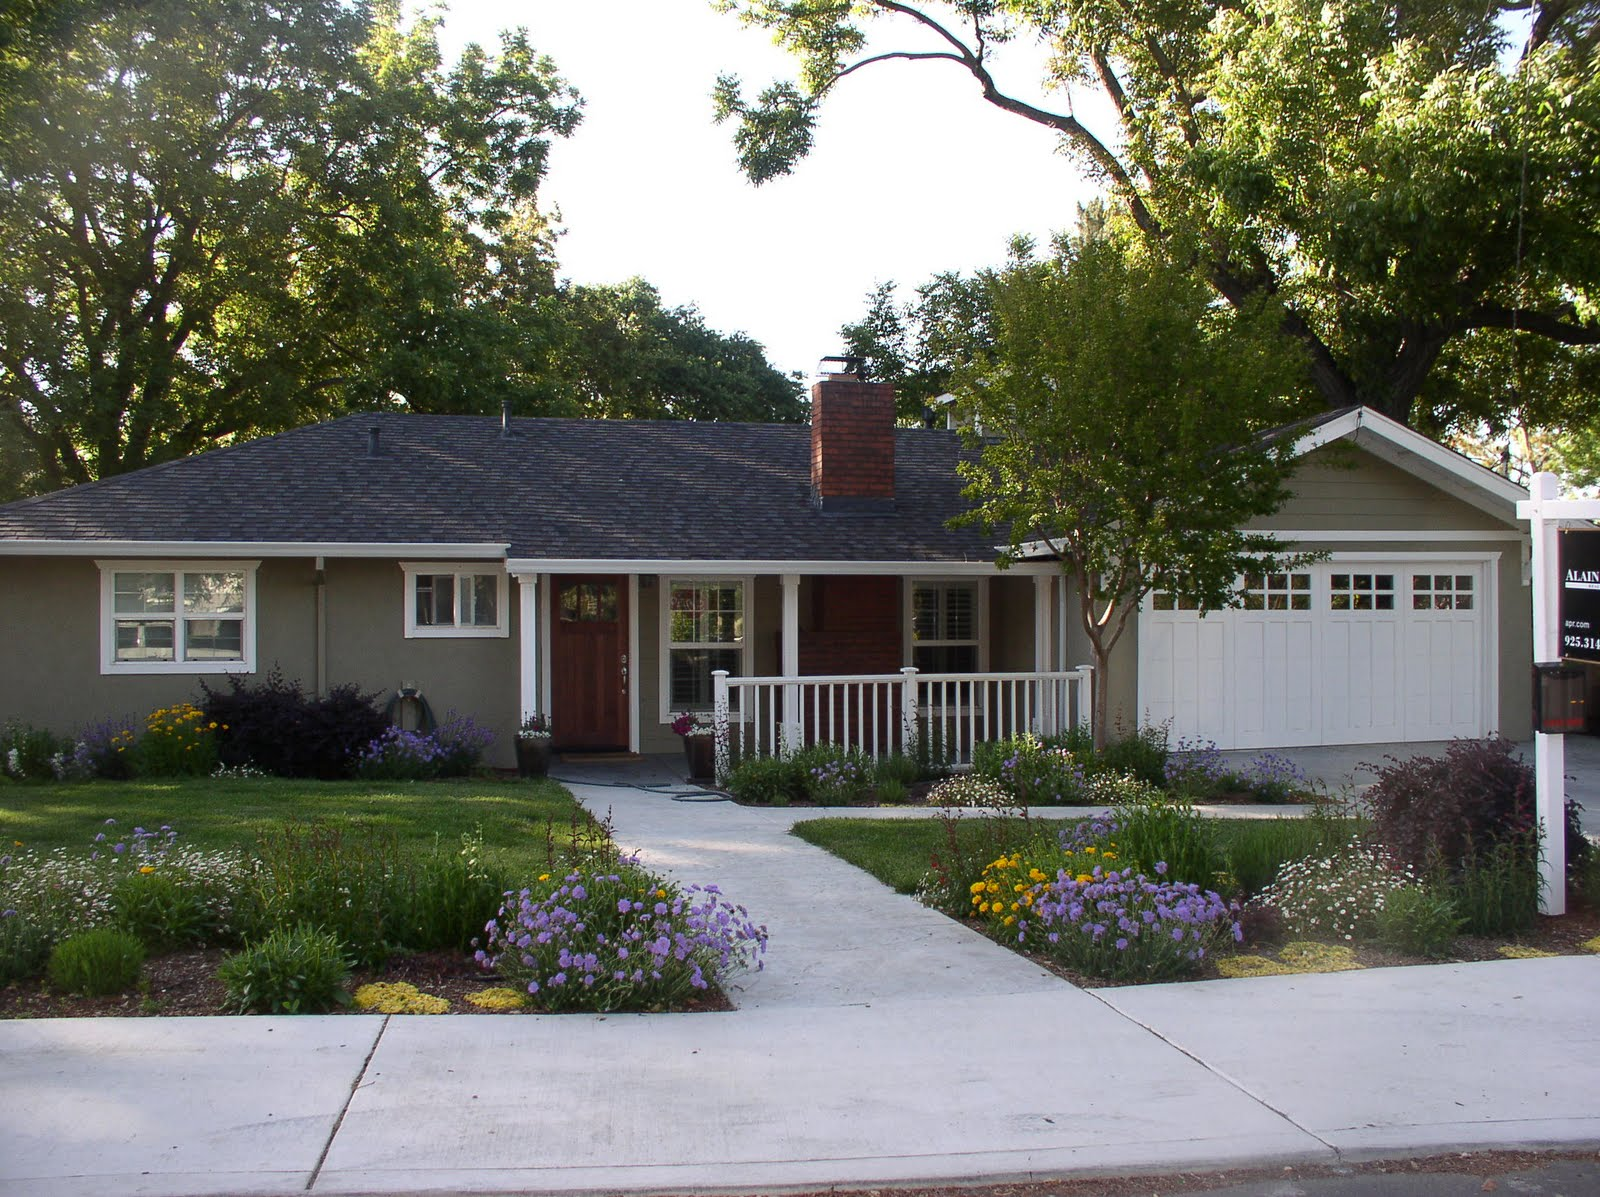 Our slo house curb appeal exterior paint color - Best exterior paint colors combinations style ...